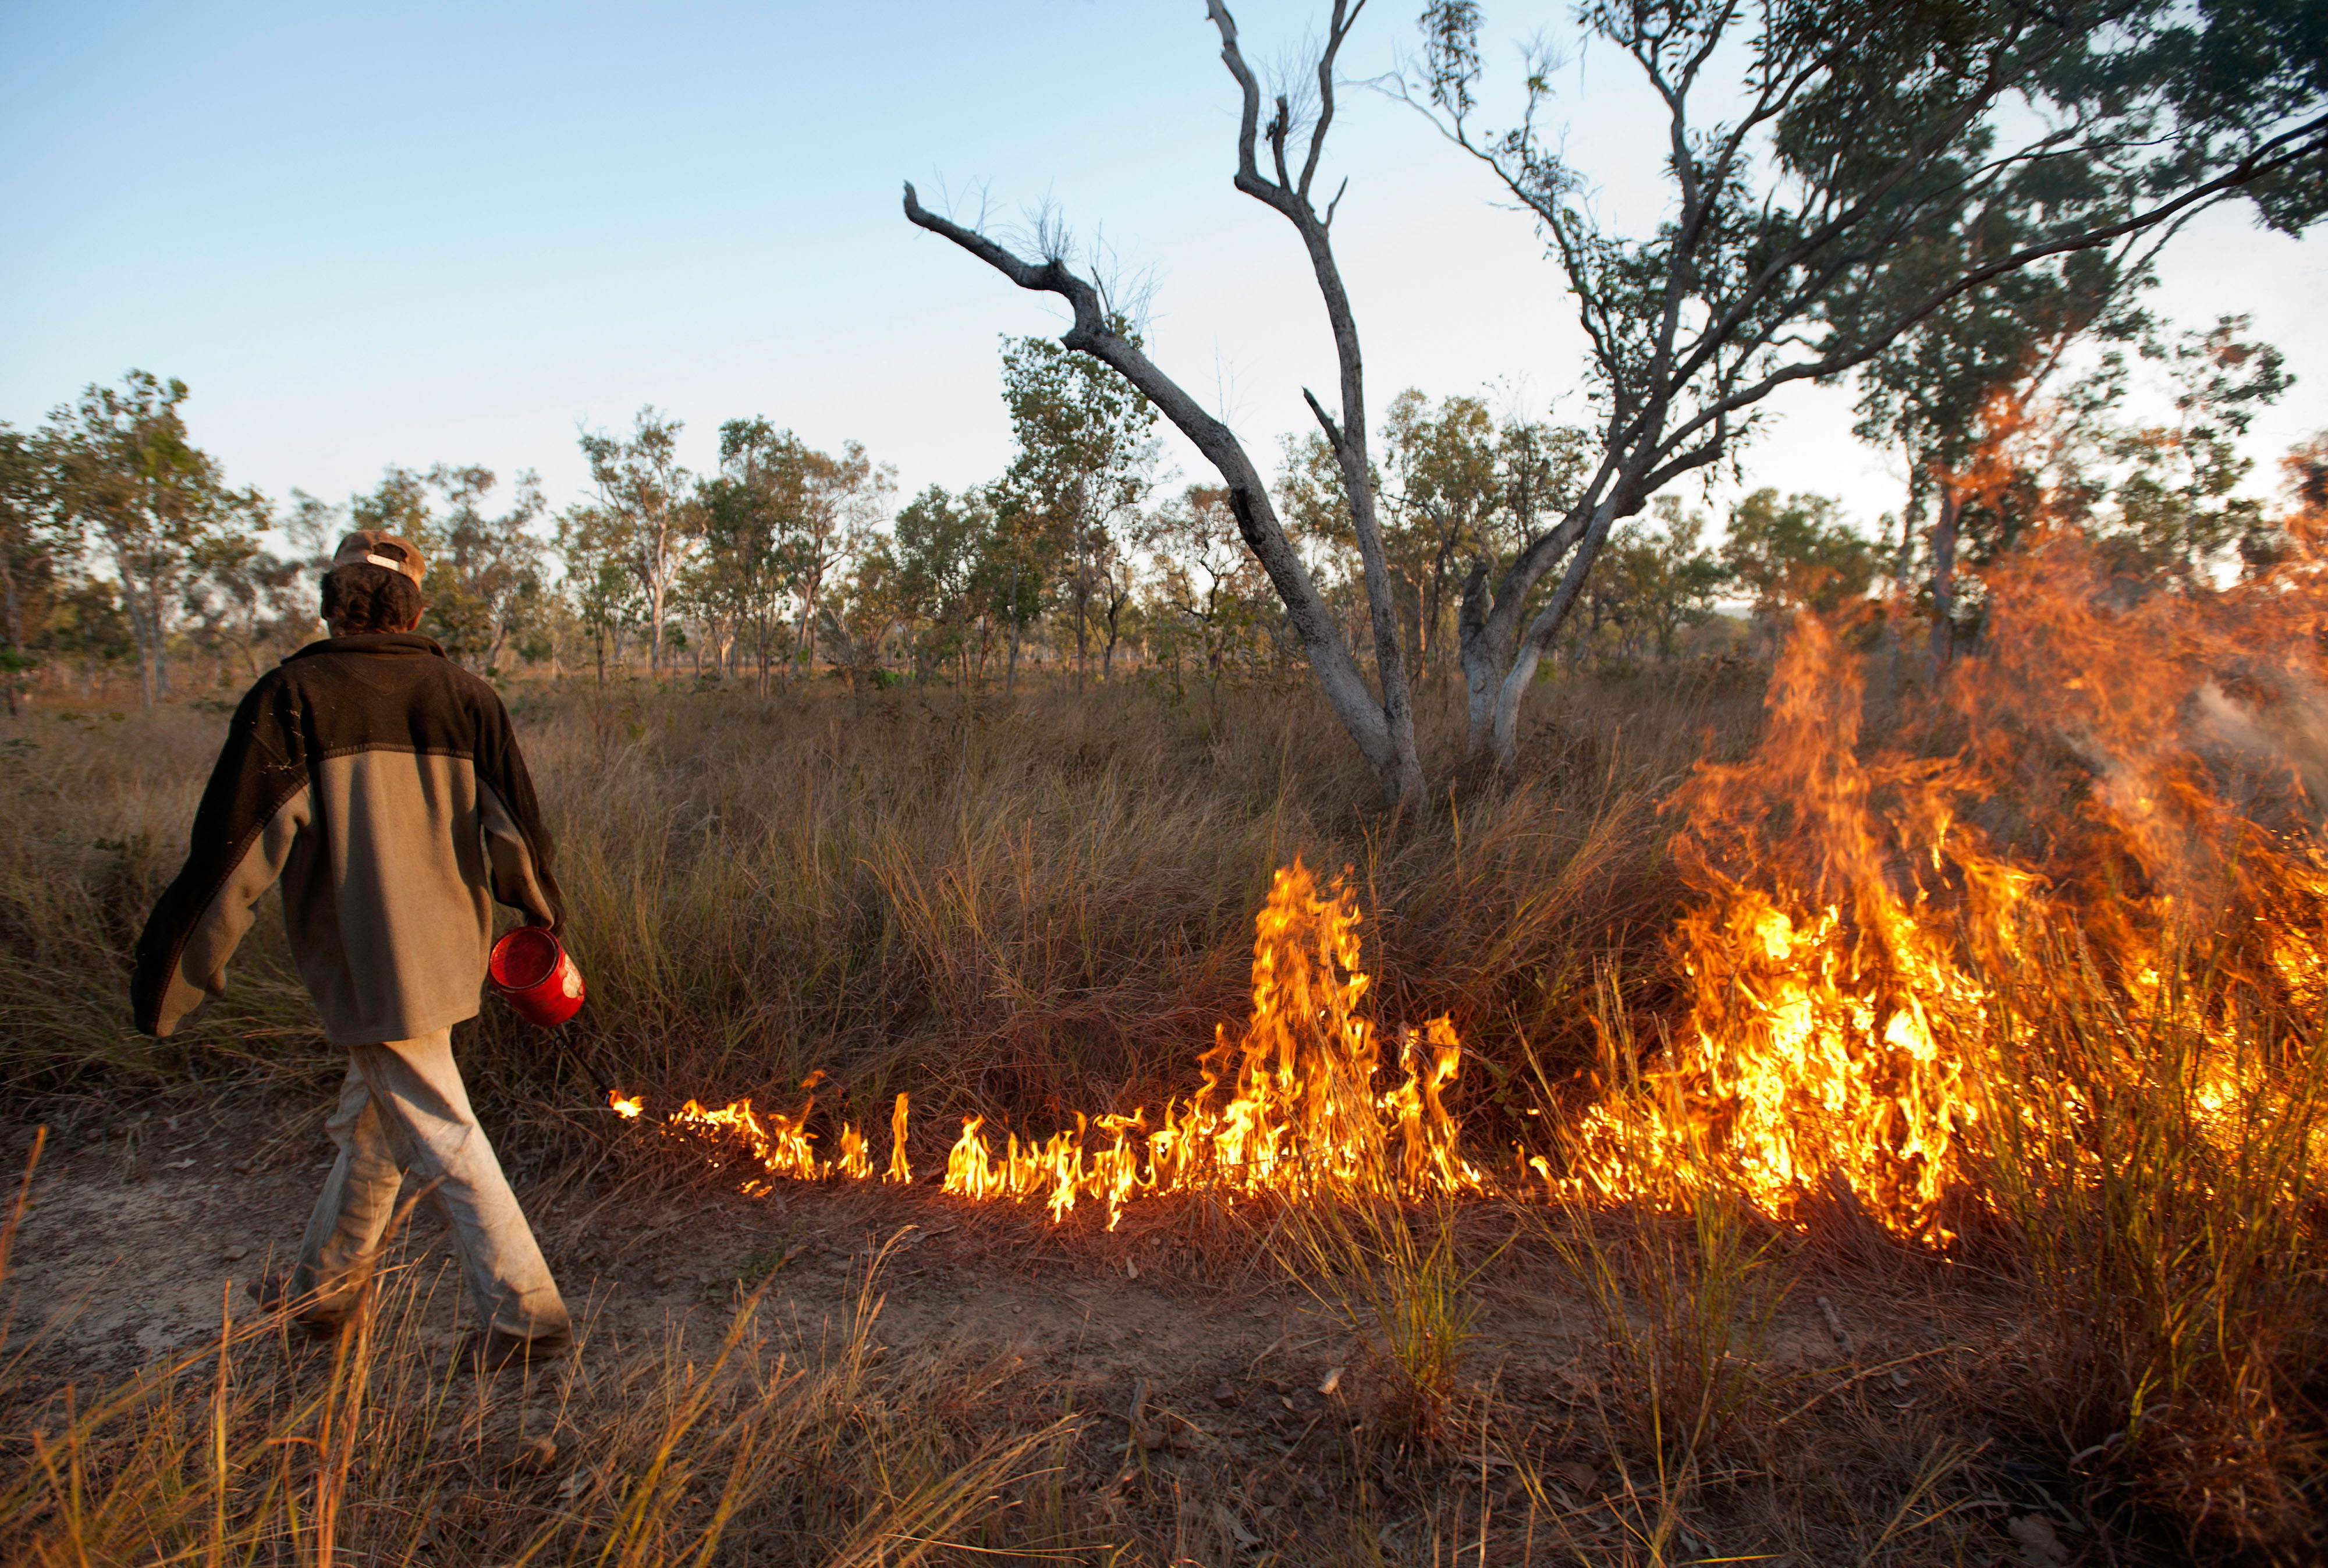 A man tending a controlled burn on a grassy area